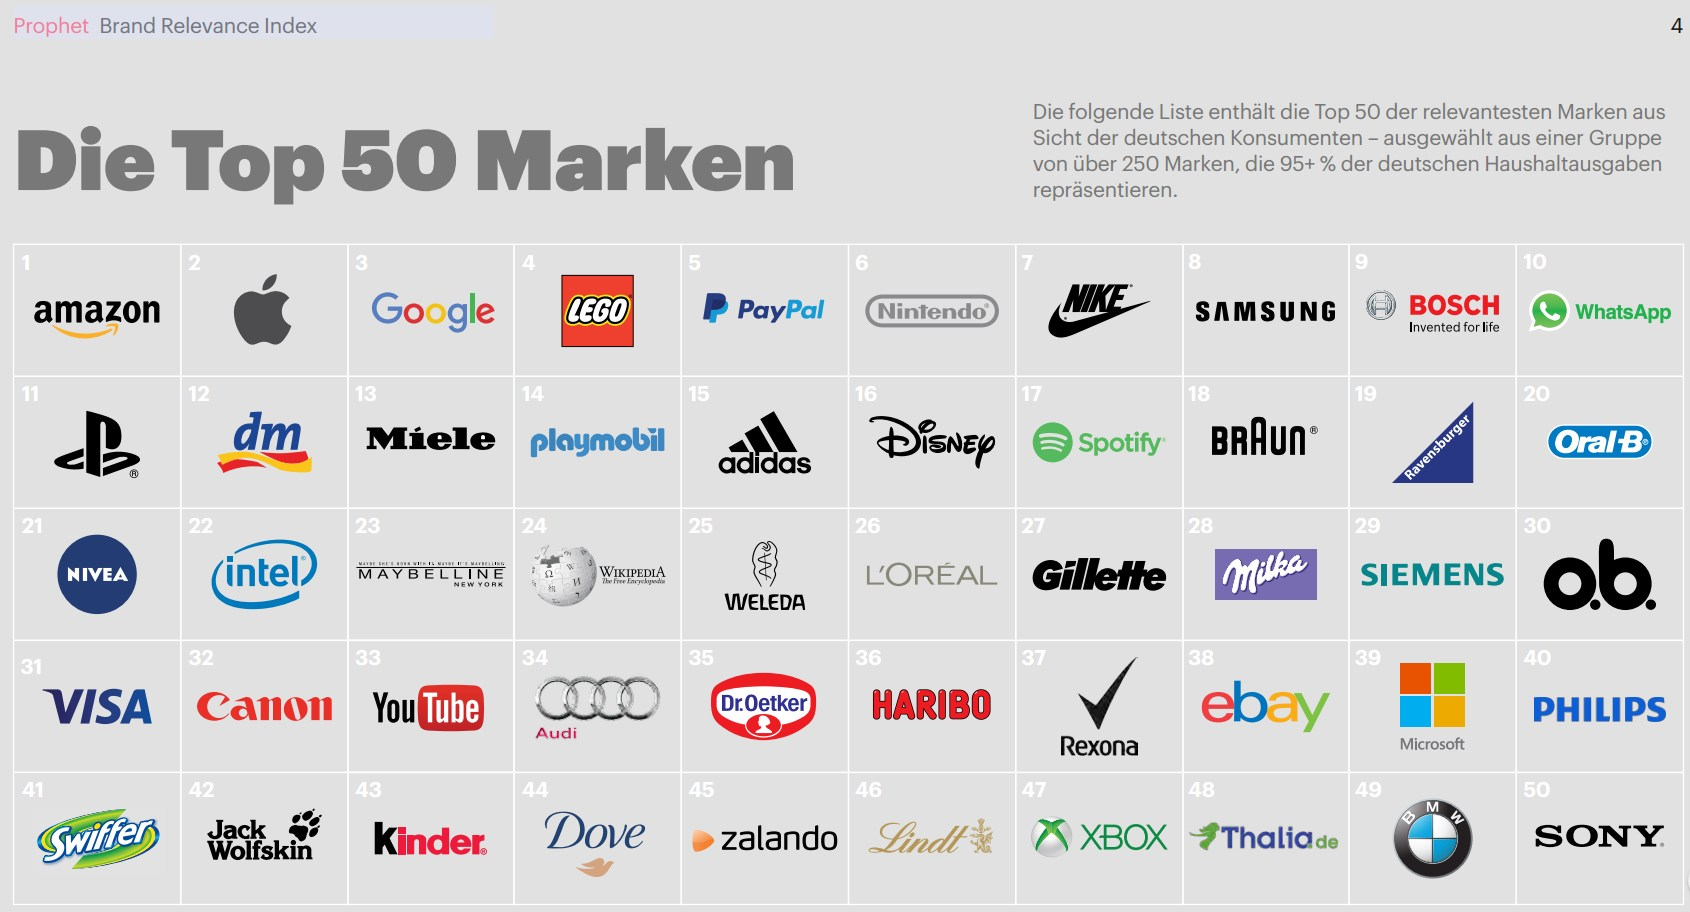 screen (c) prophet marken top 50 de